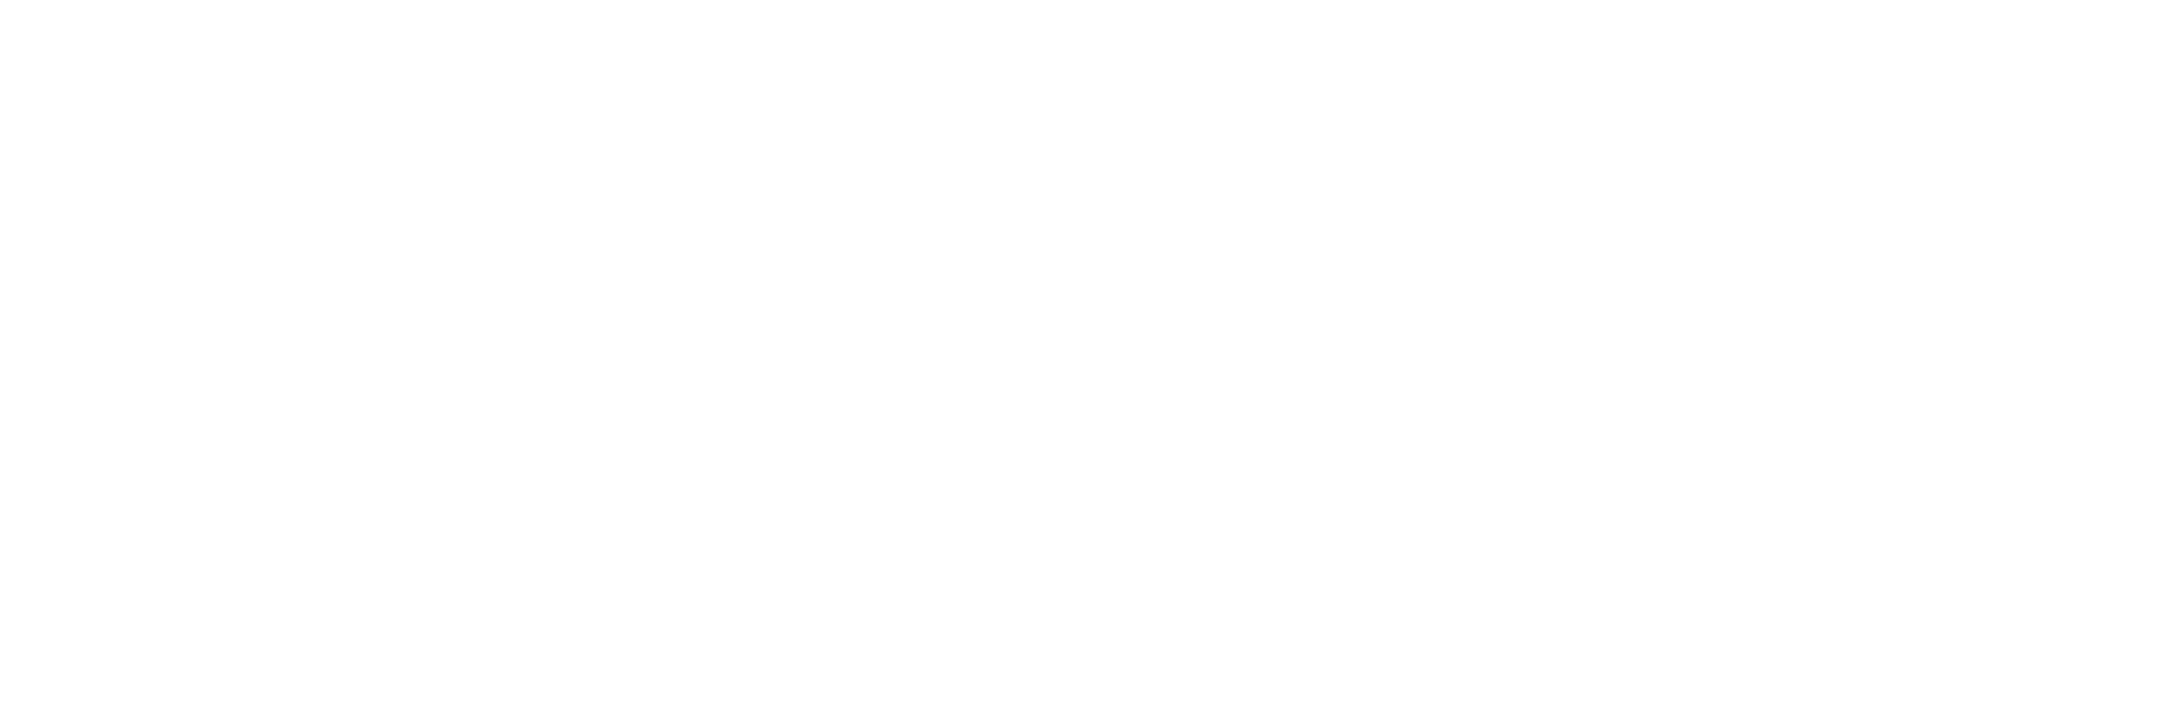 UPTICK Strategic Advisors